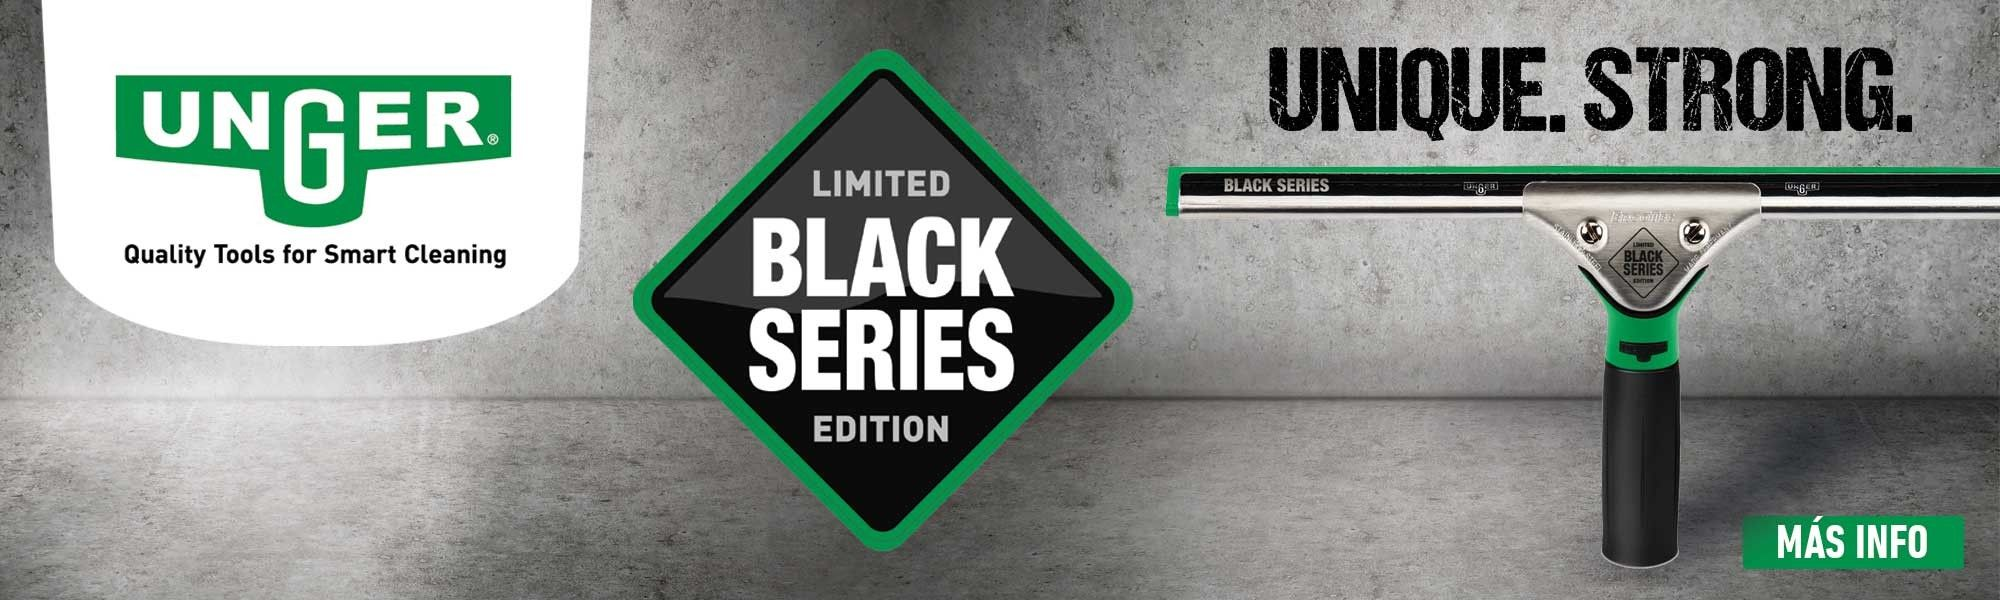 Unger Black Series Limited Edition